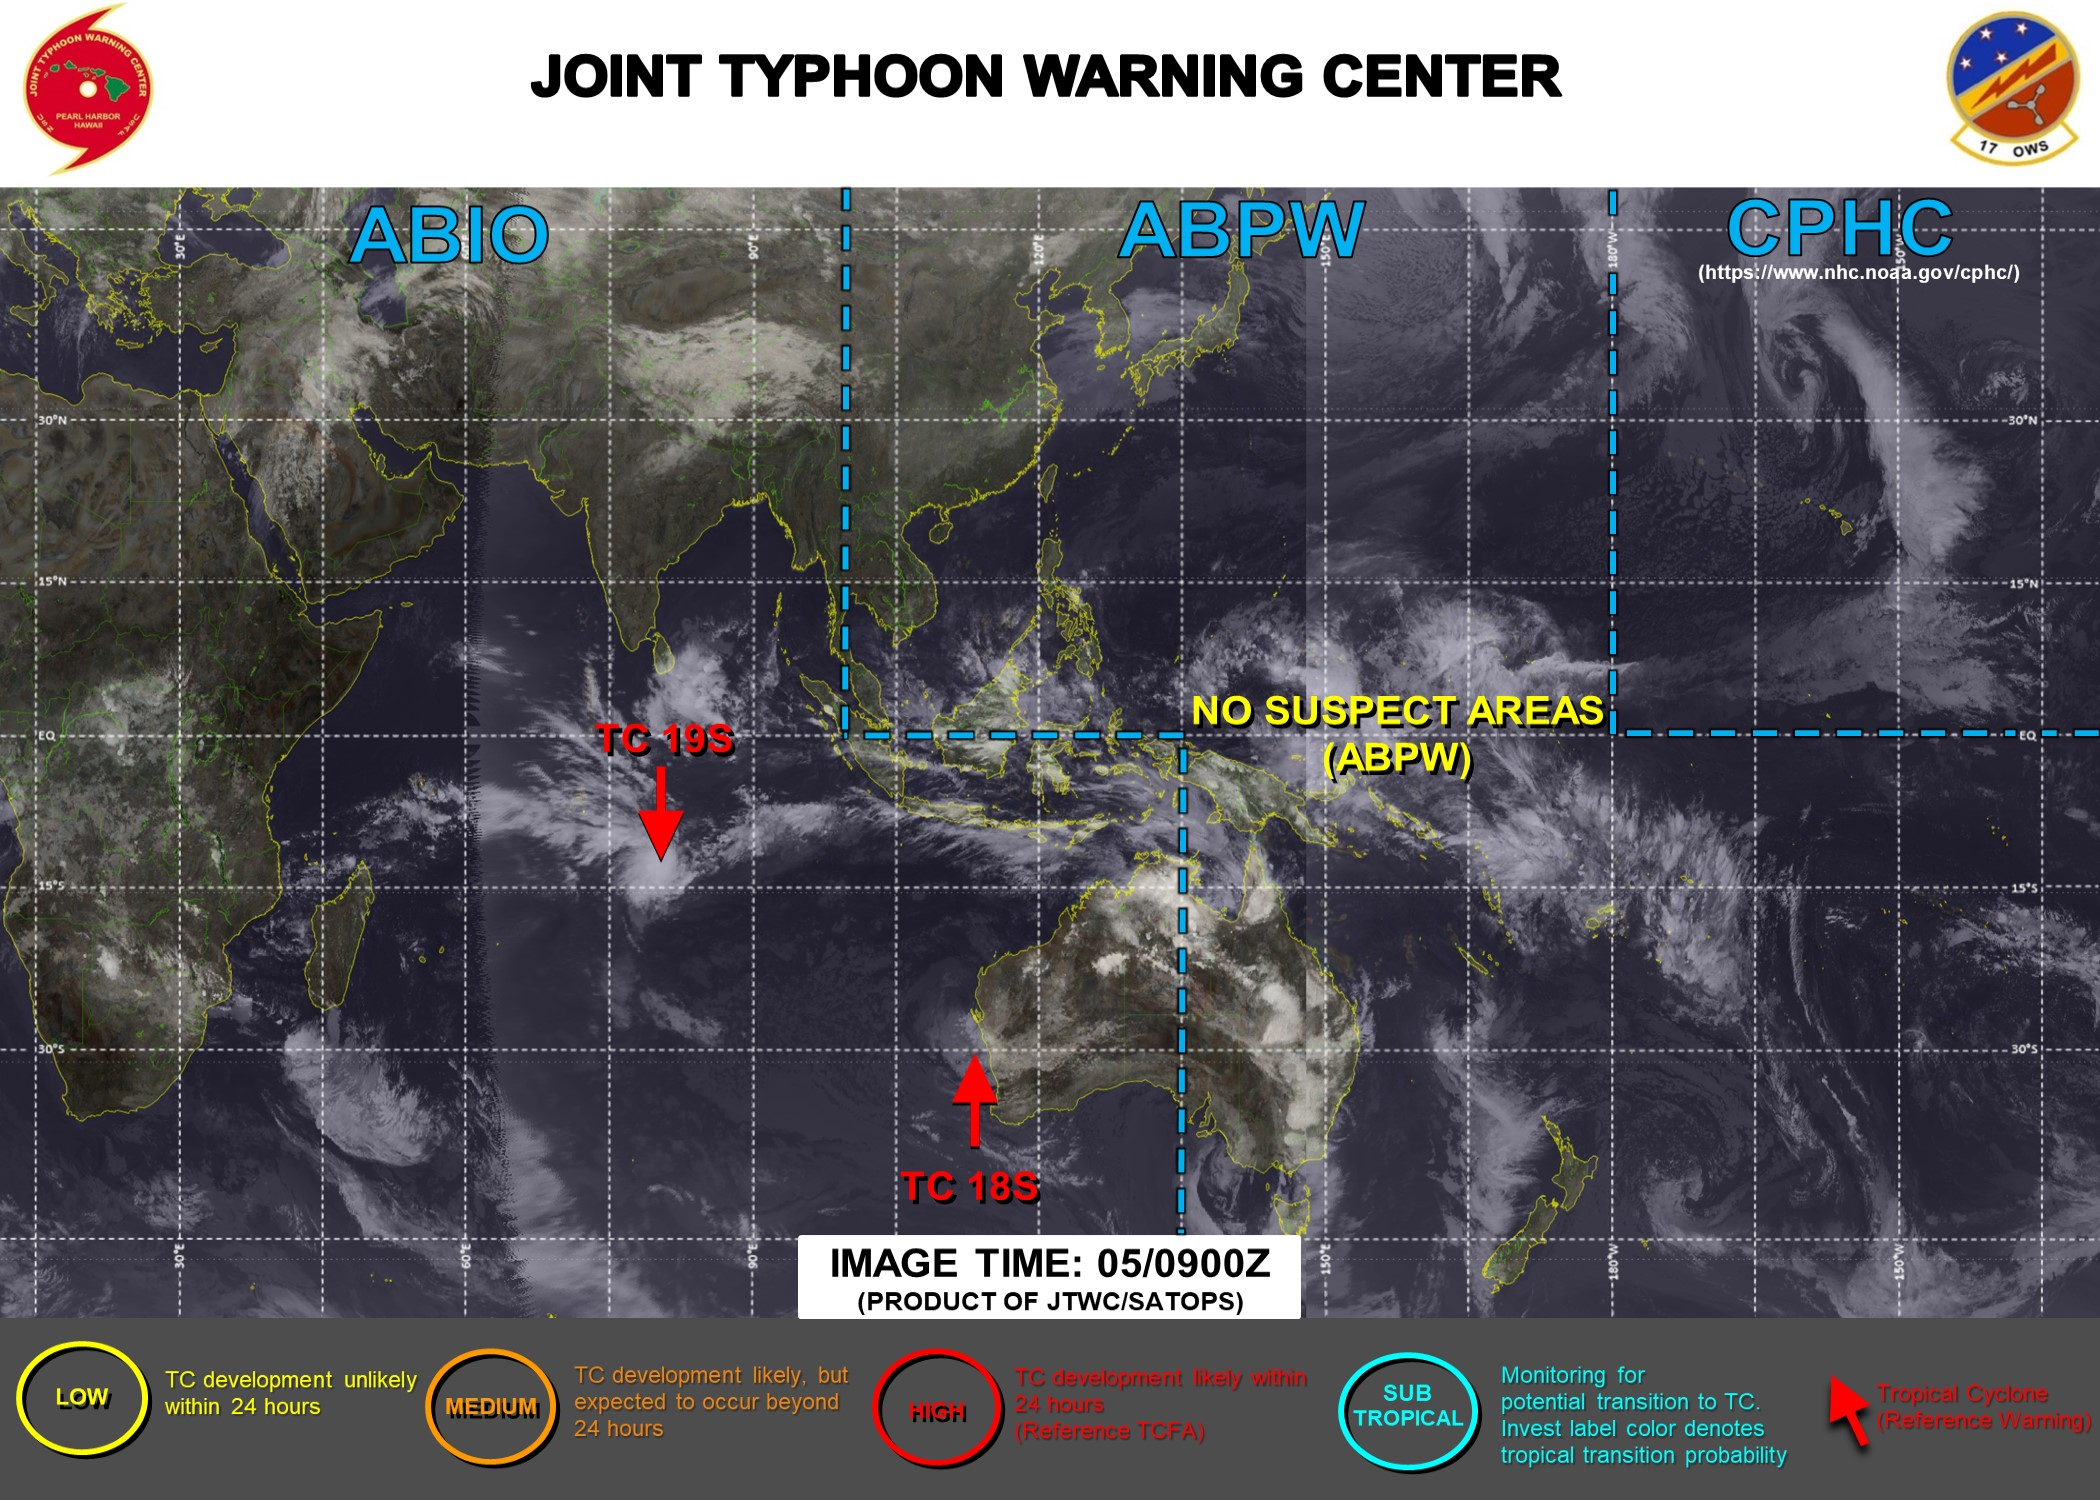 05/09UTC. JTWC IS ISSUING 12HOURLY WARNINGS ON 19S. 3HOURLY SATELLITE BULLETINS ARE PROVIDED FOR 19S AND 18S.